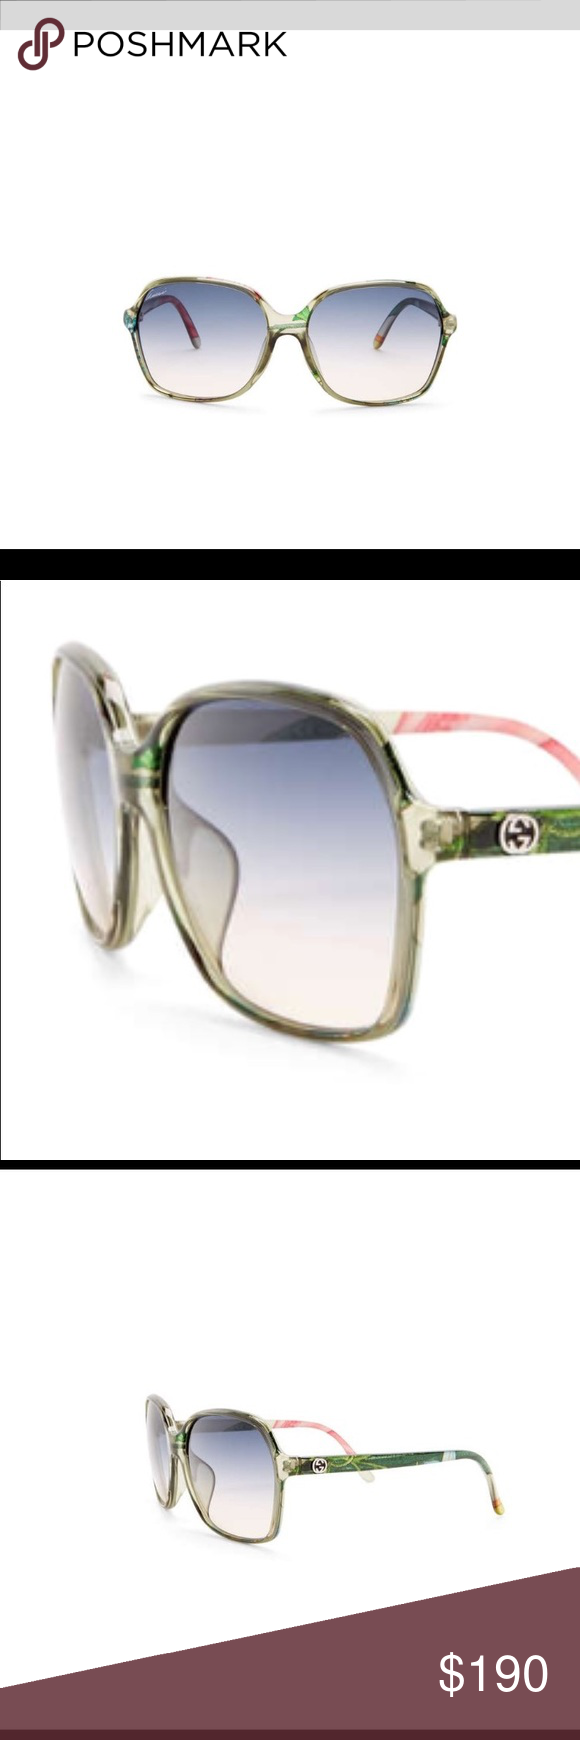 2b590adeb68f 100% UV protection. Made in Italy. Comes with original case. Gucci  Accessories Sunglasses. Authentic Gucci Green Floral Sunglasses Women's  oversized ...